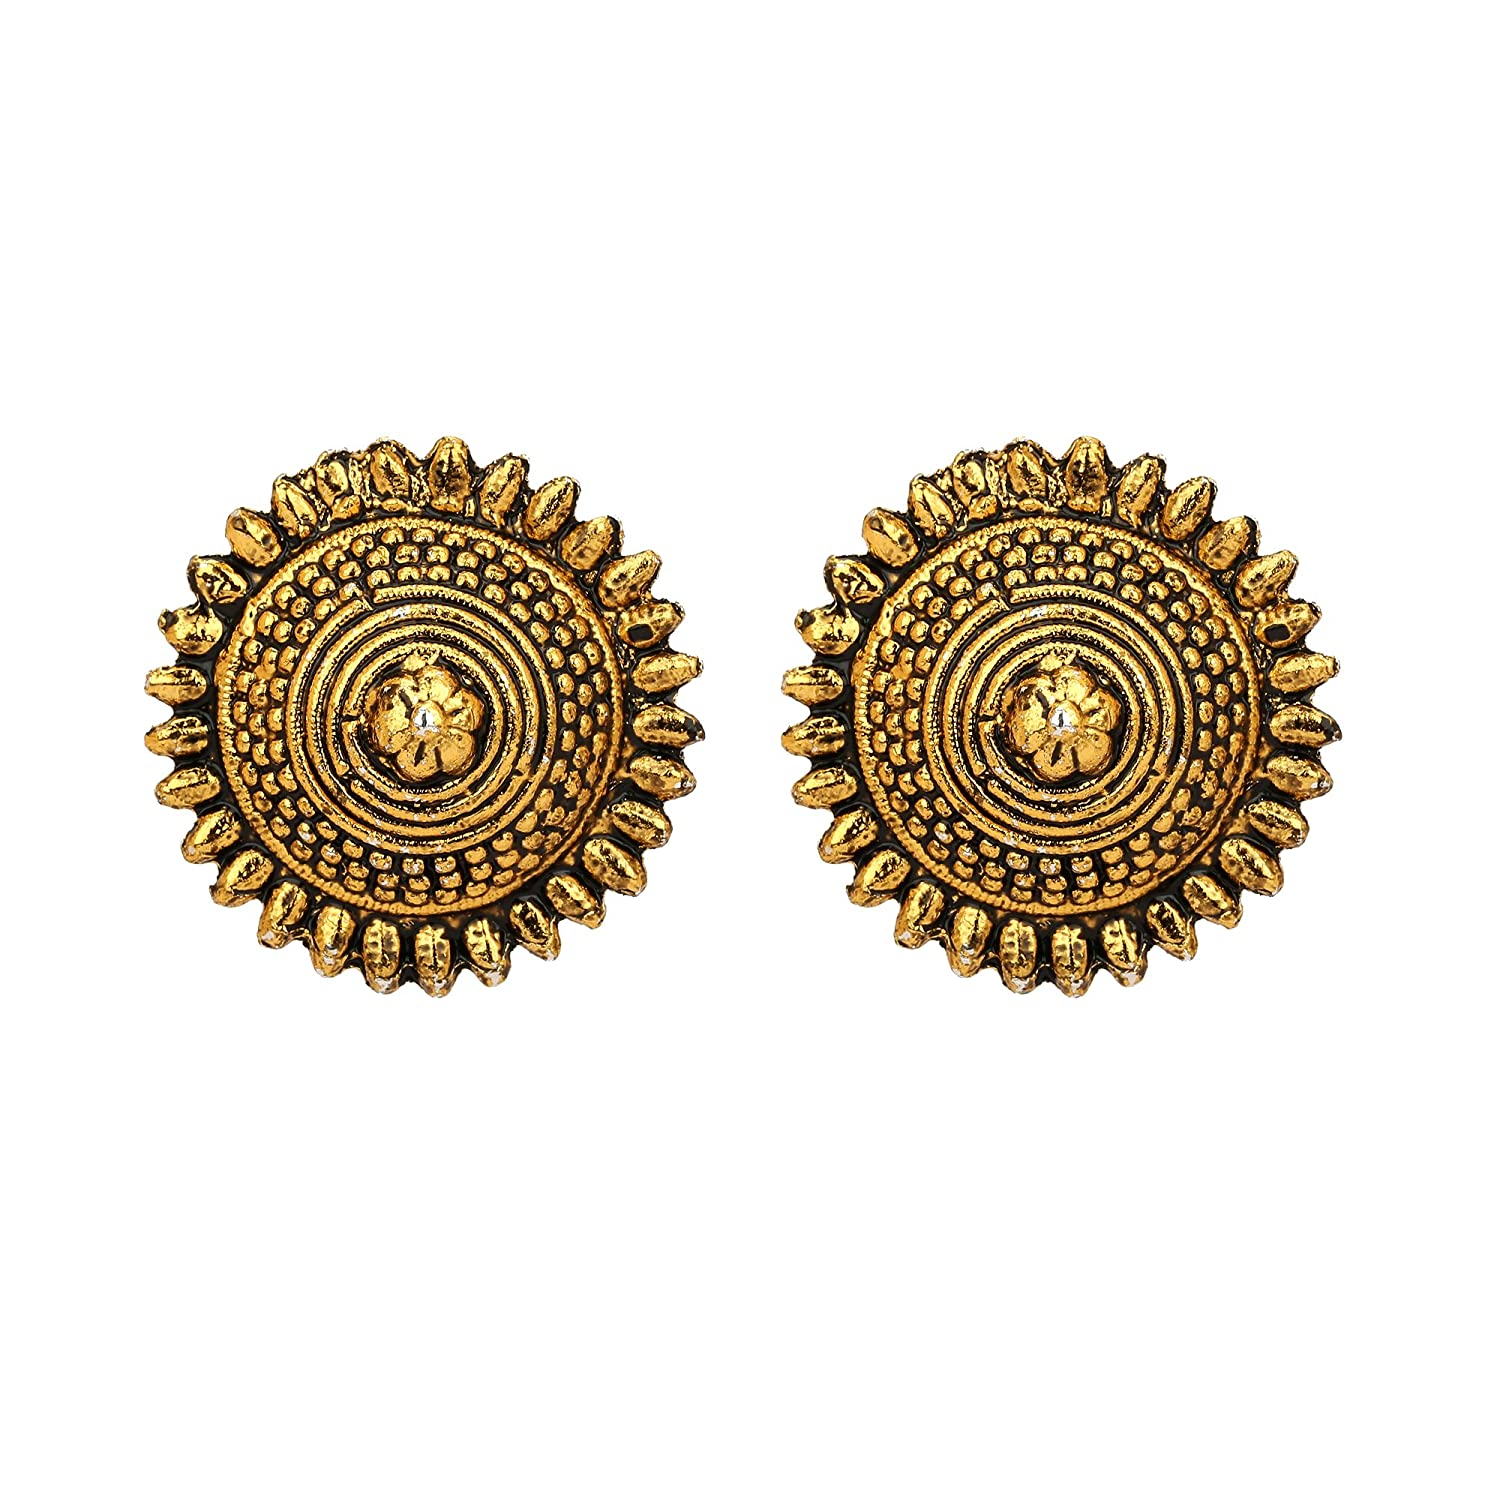 Jwellmart Afghani Bohemian Tribal Style Oxidized Stud Indian Earrings for Women and Girls